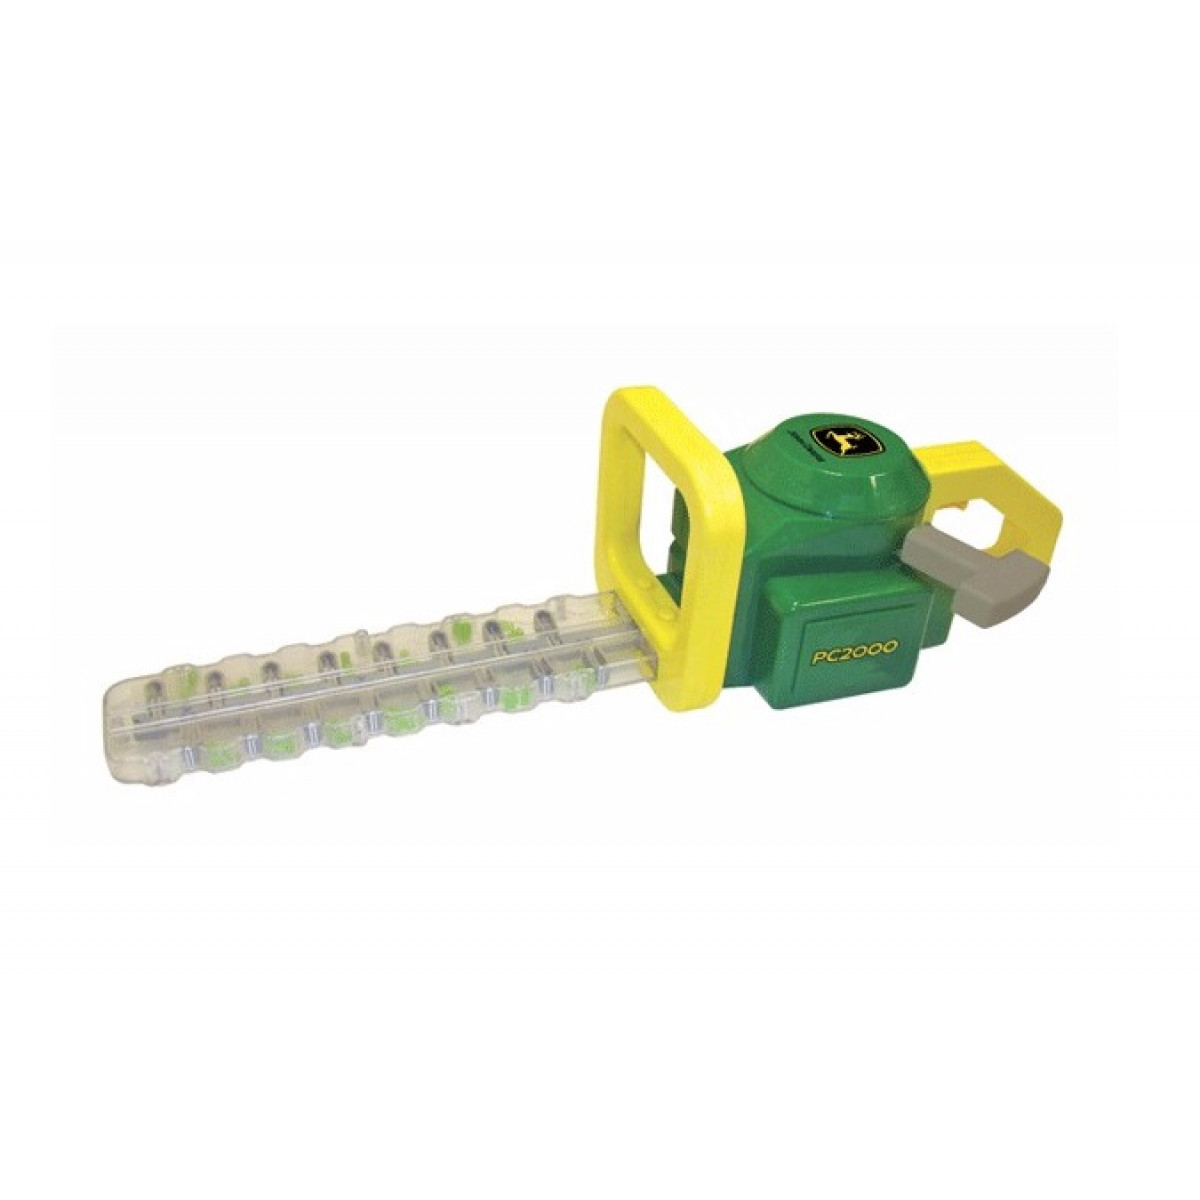 John Deere - Trimmer Attachments - Trimmers & Edgers - The ...